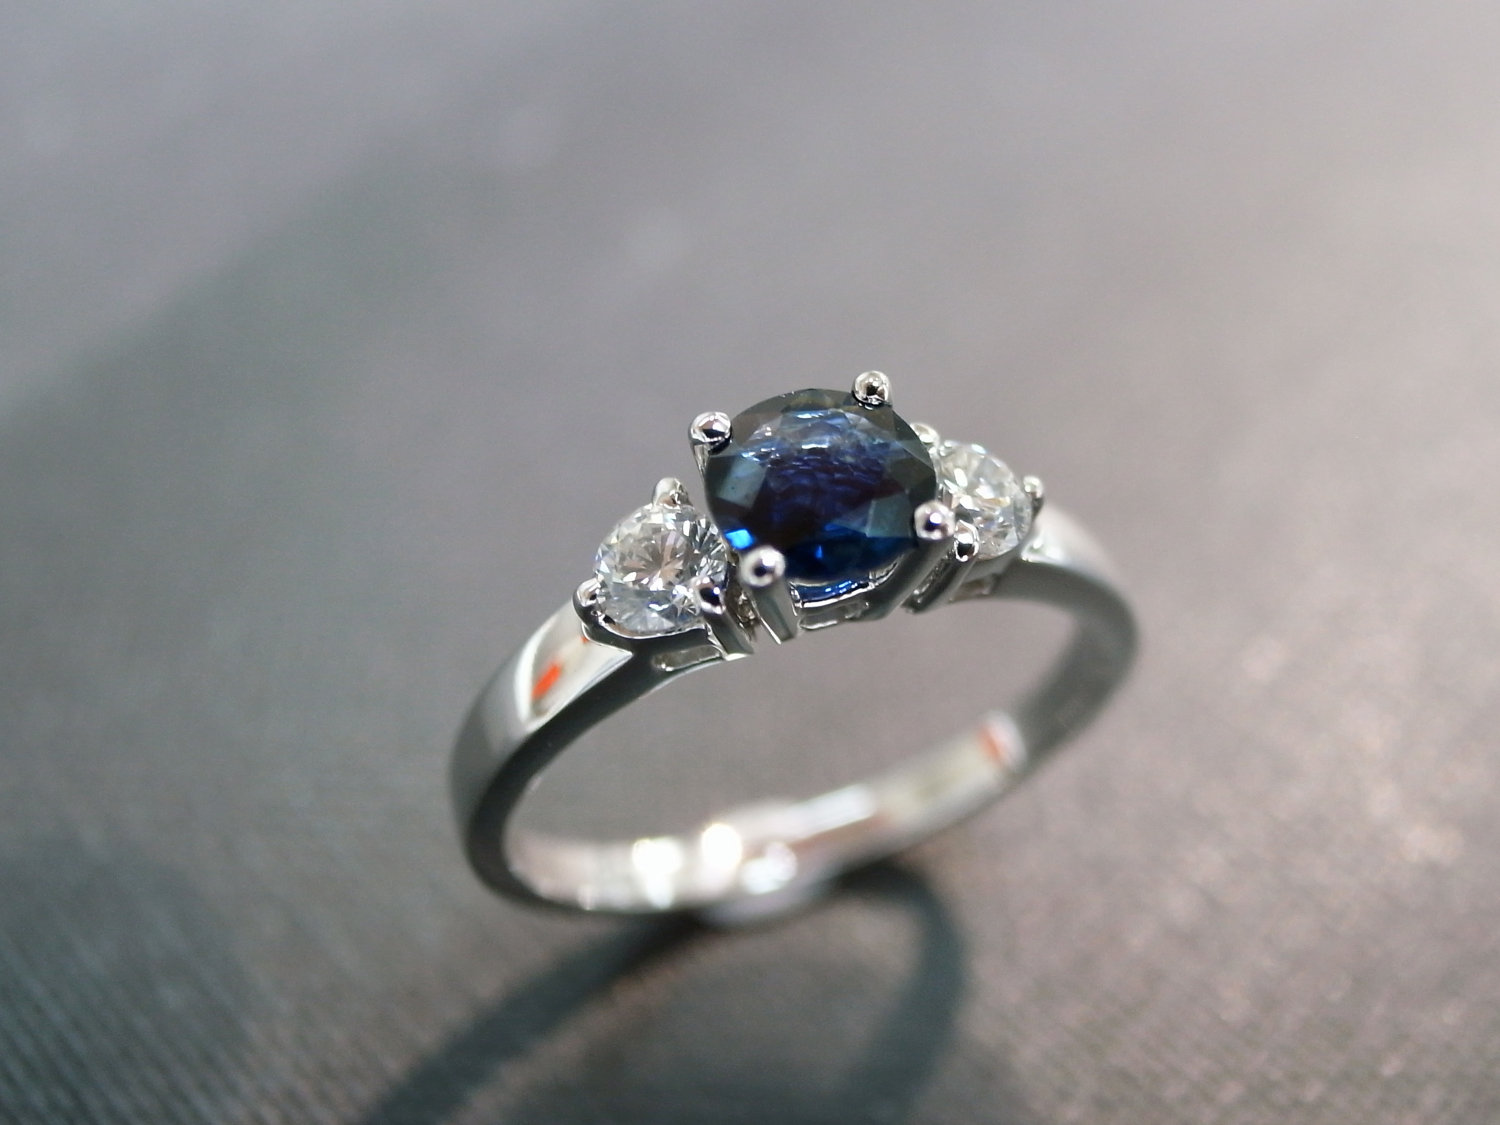 blog gemstone colorful engagement kate rings appeal colored of ring the sapphire wedding